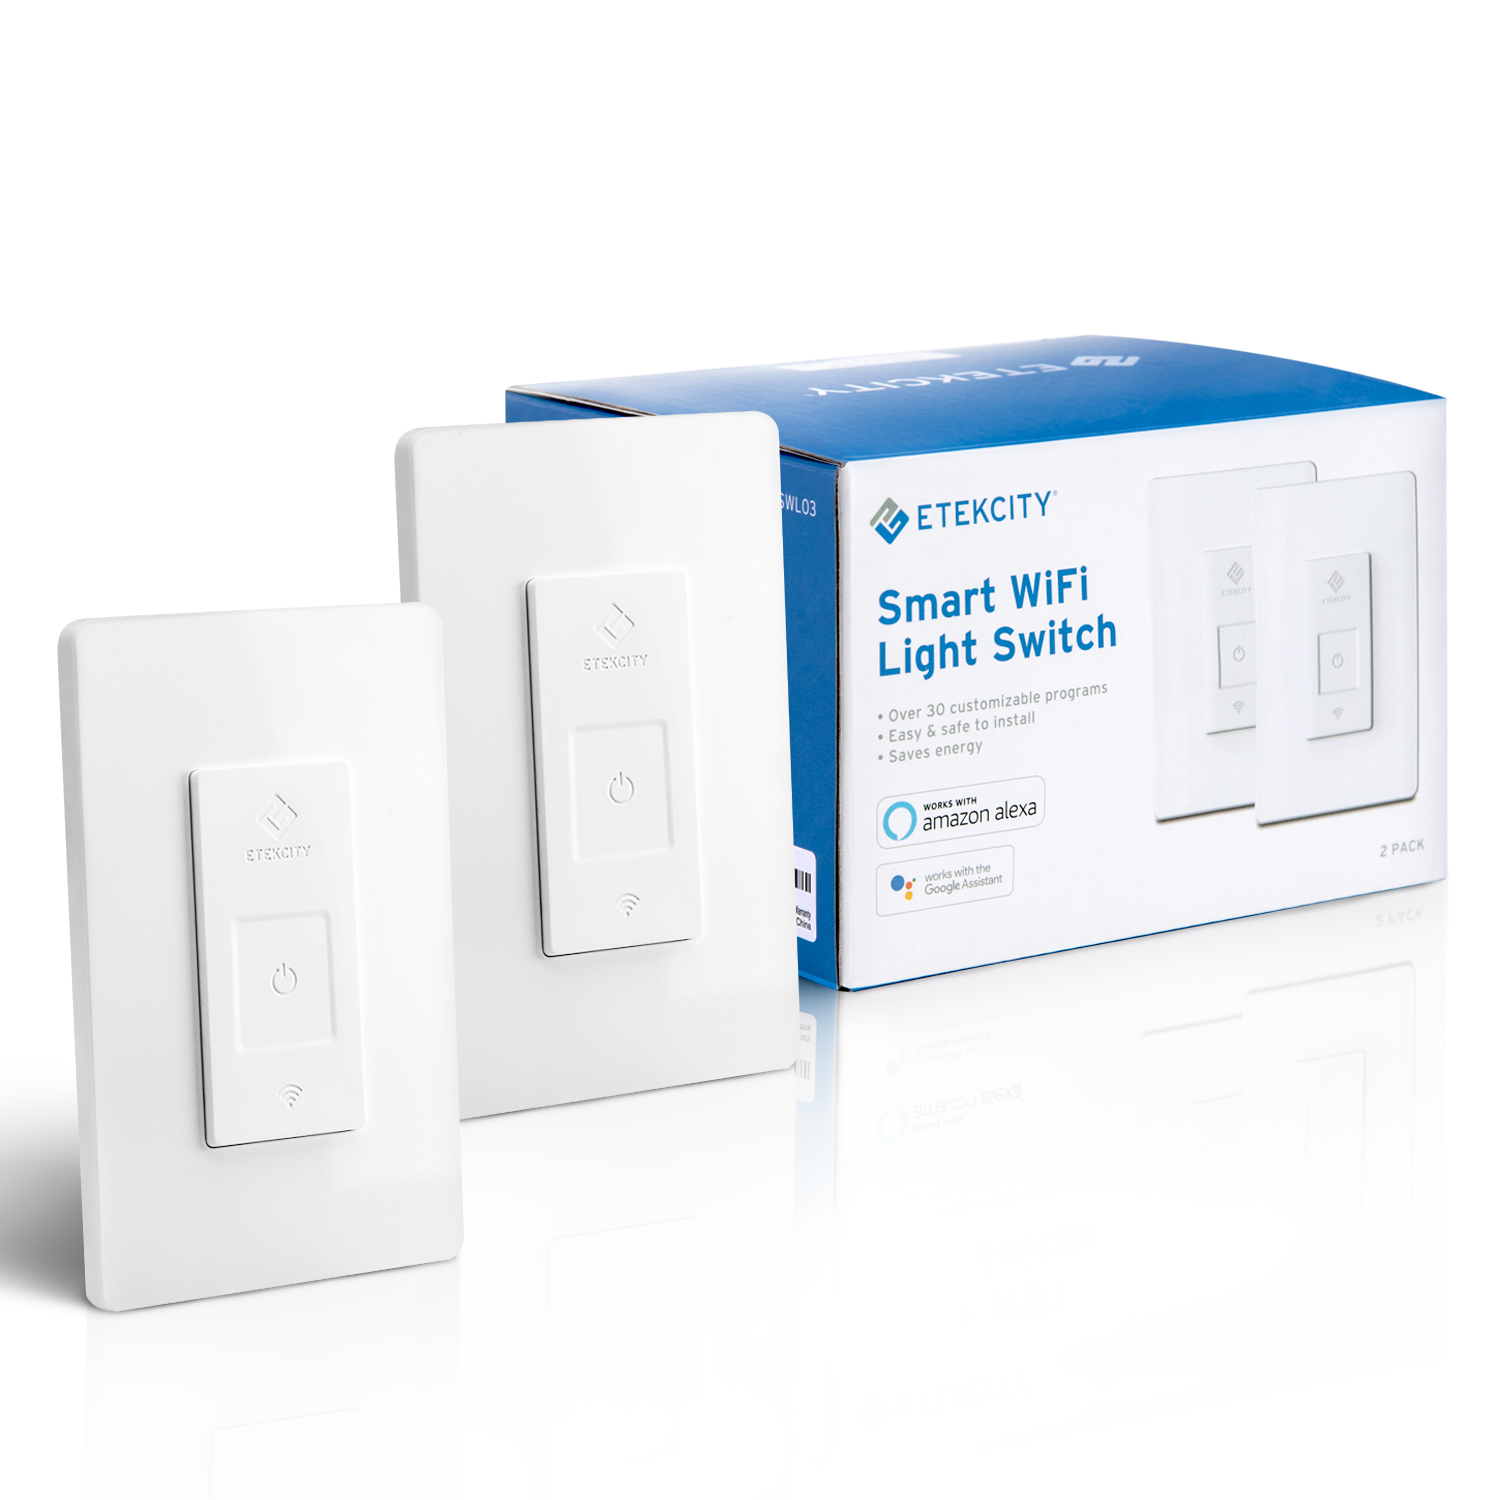 1.00_LP_HTHOHIHT28D_ESWL03_3-Way-Smart-Wifi-Light-Switch_02.jpg